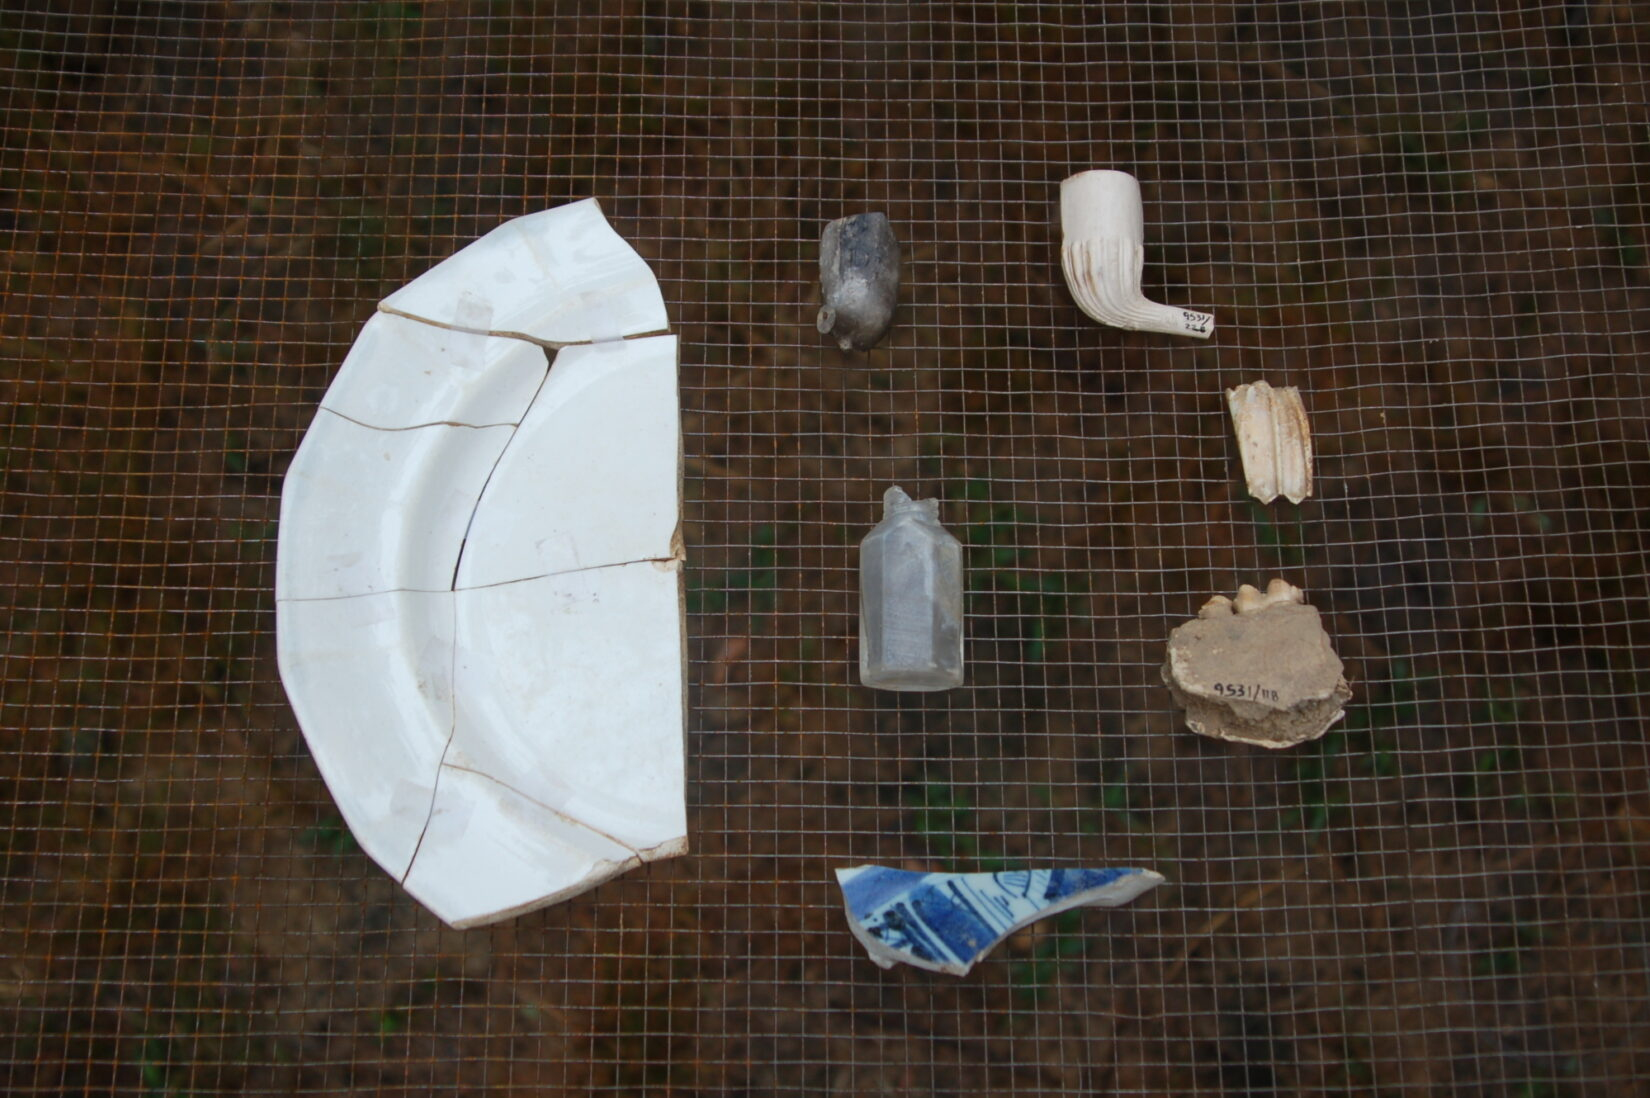 Excavated shards and pieces of smoking pipes